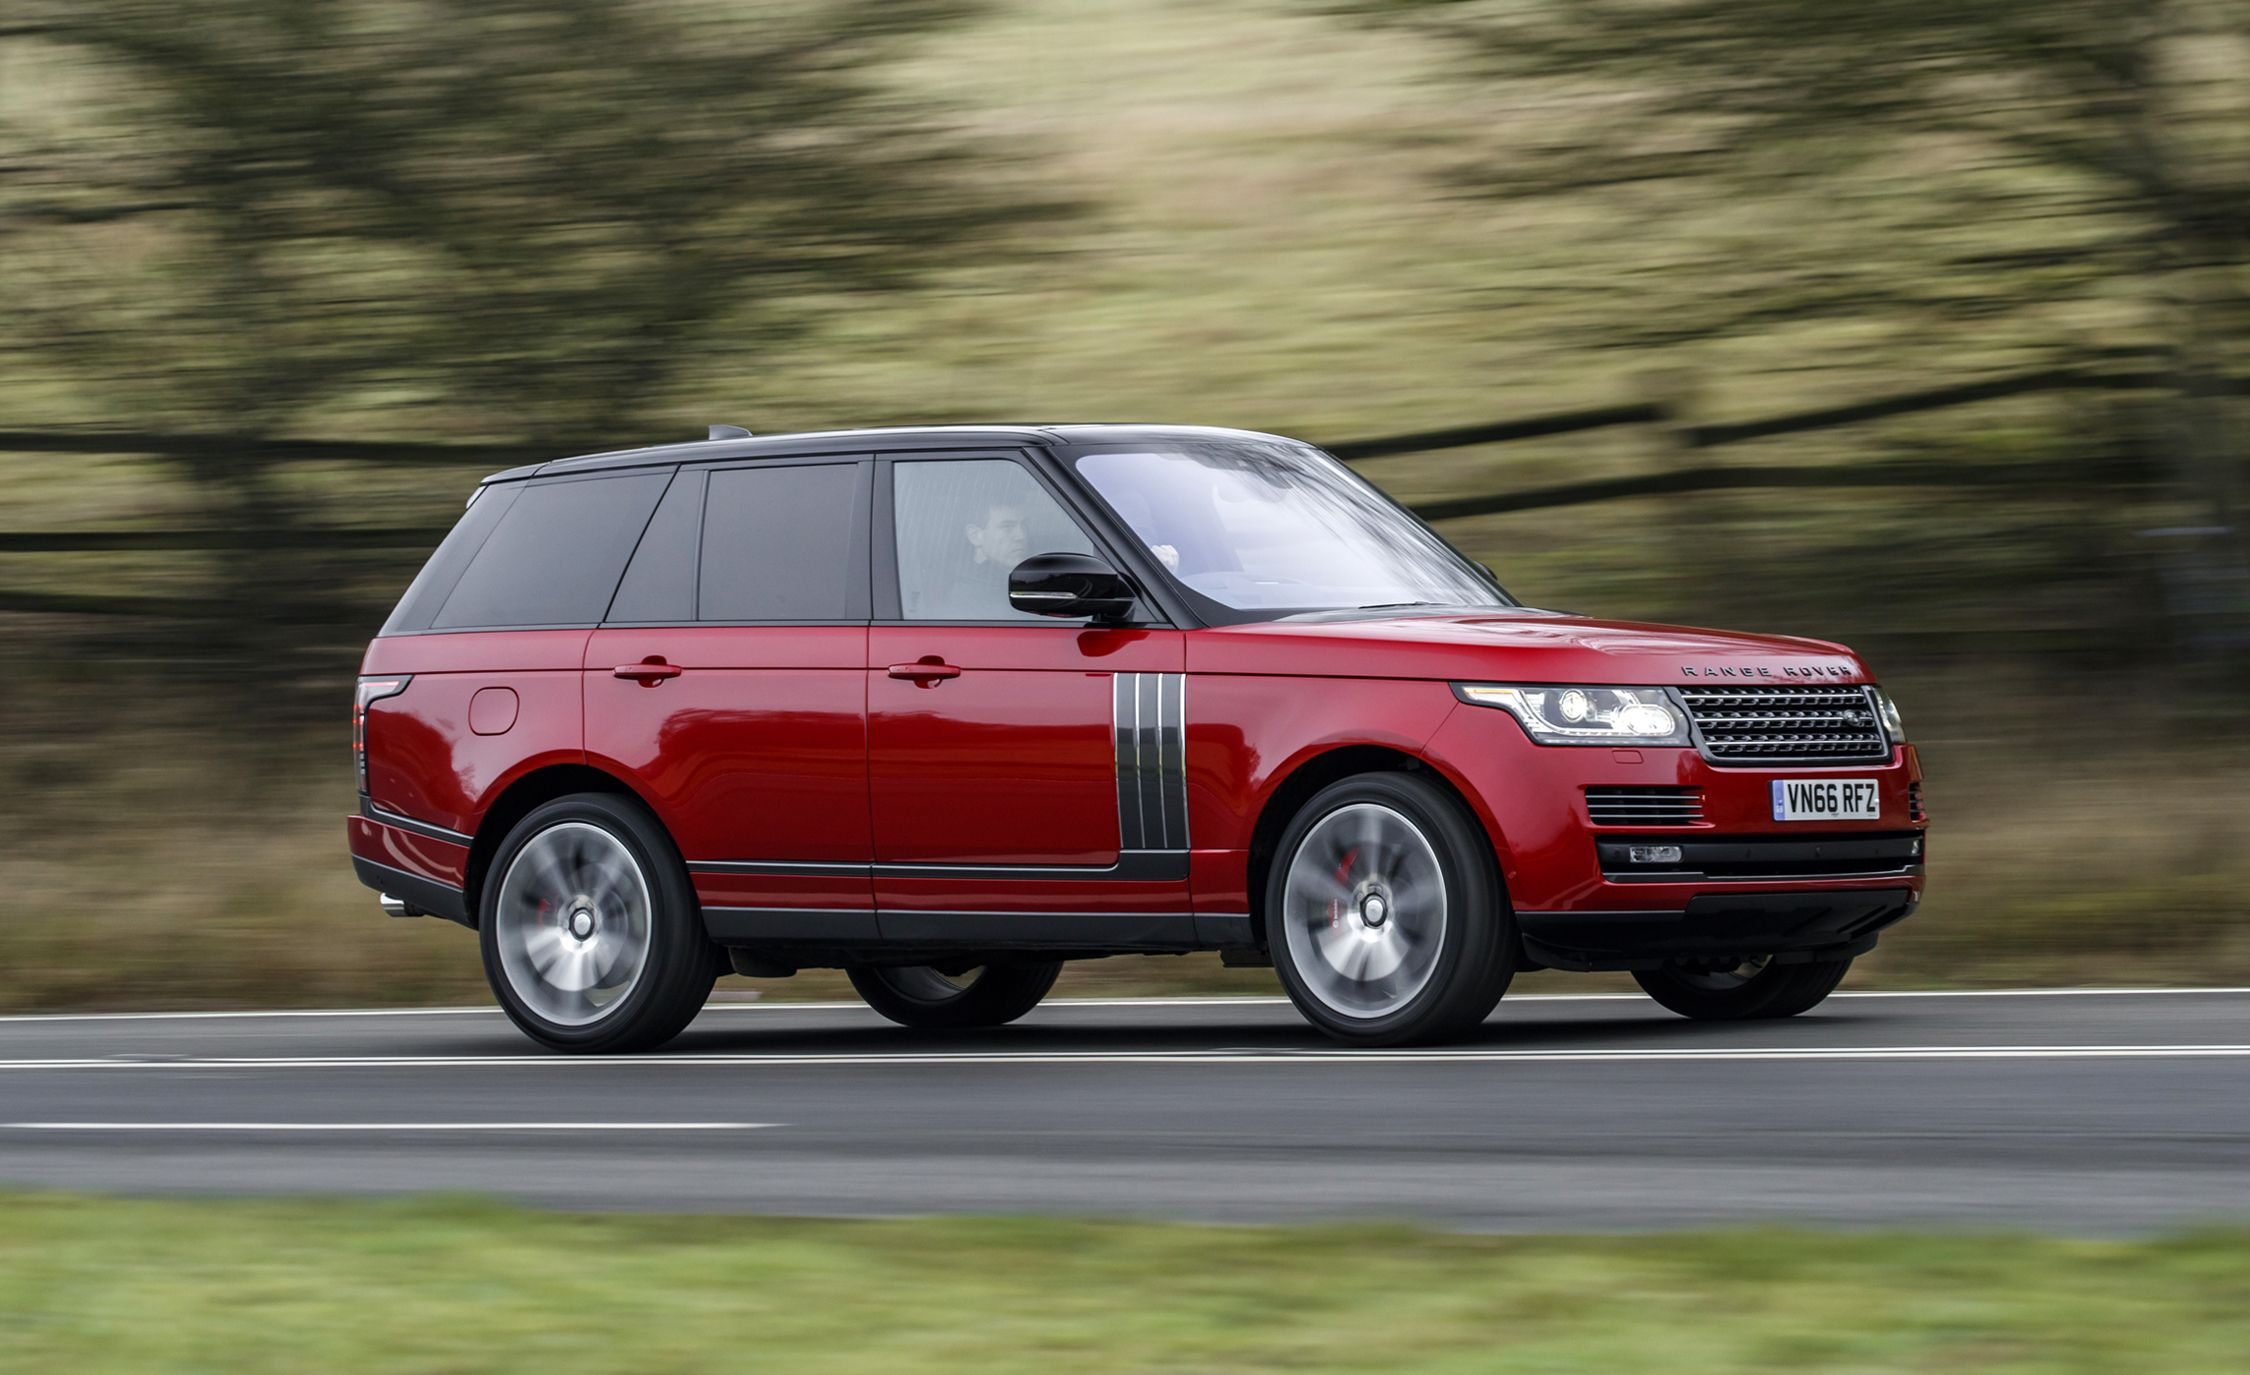 2017 range rover svautobiography dynamic review car and driver. Black Bedroom Furniture Sets. Home Design Ideas